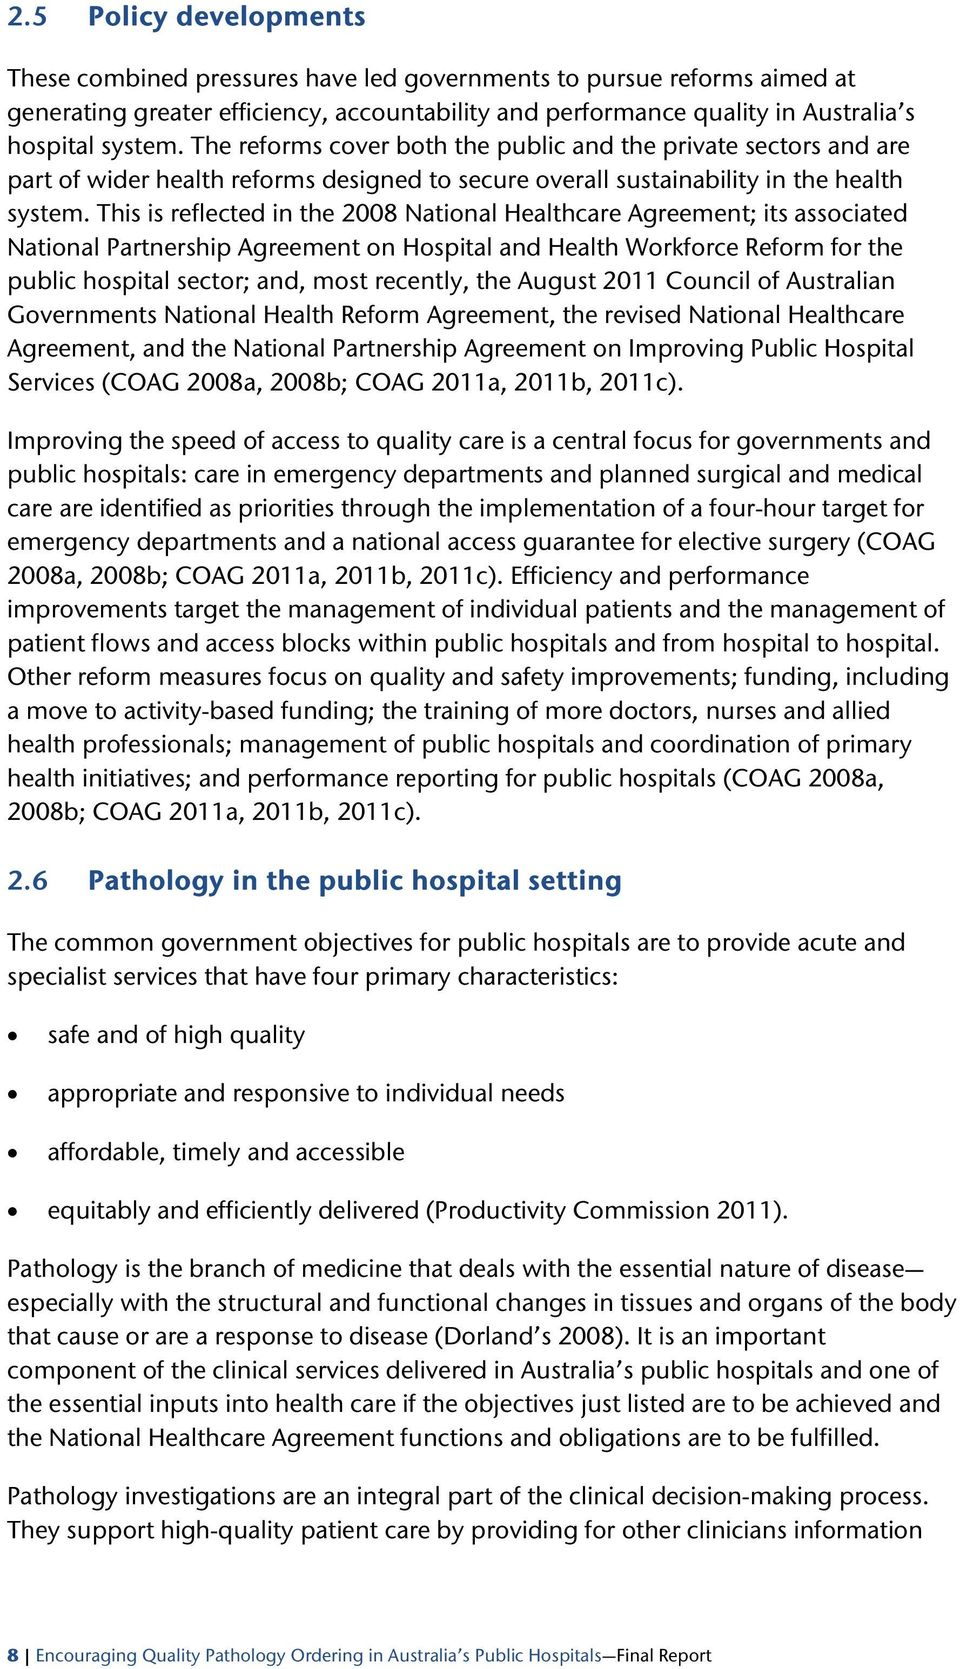 This is reflected in the 2008 National Healthcare Agreement; its associated National Partnership Agreement on Hospital and Health Workforce Reform for the public hospital sector; and, most recently,